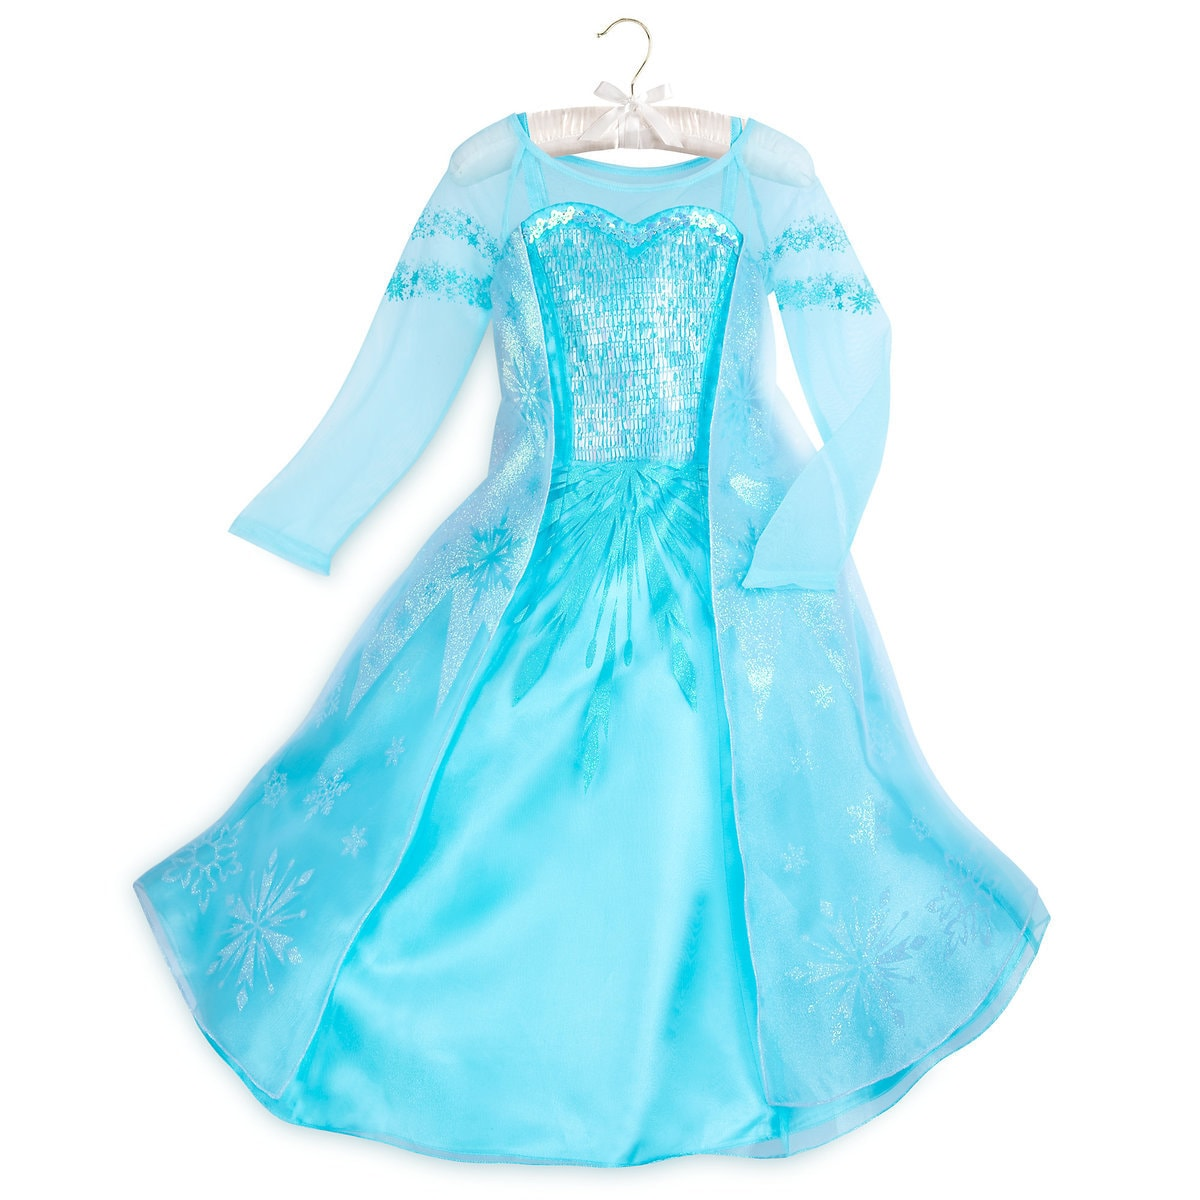 ed42bec5714 Product Image of Elsa Costume for Kids - Frozen   1